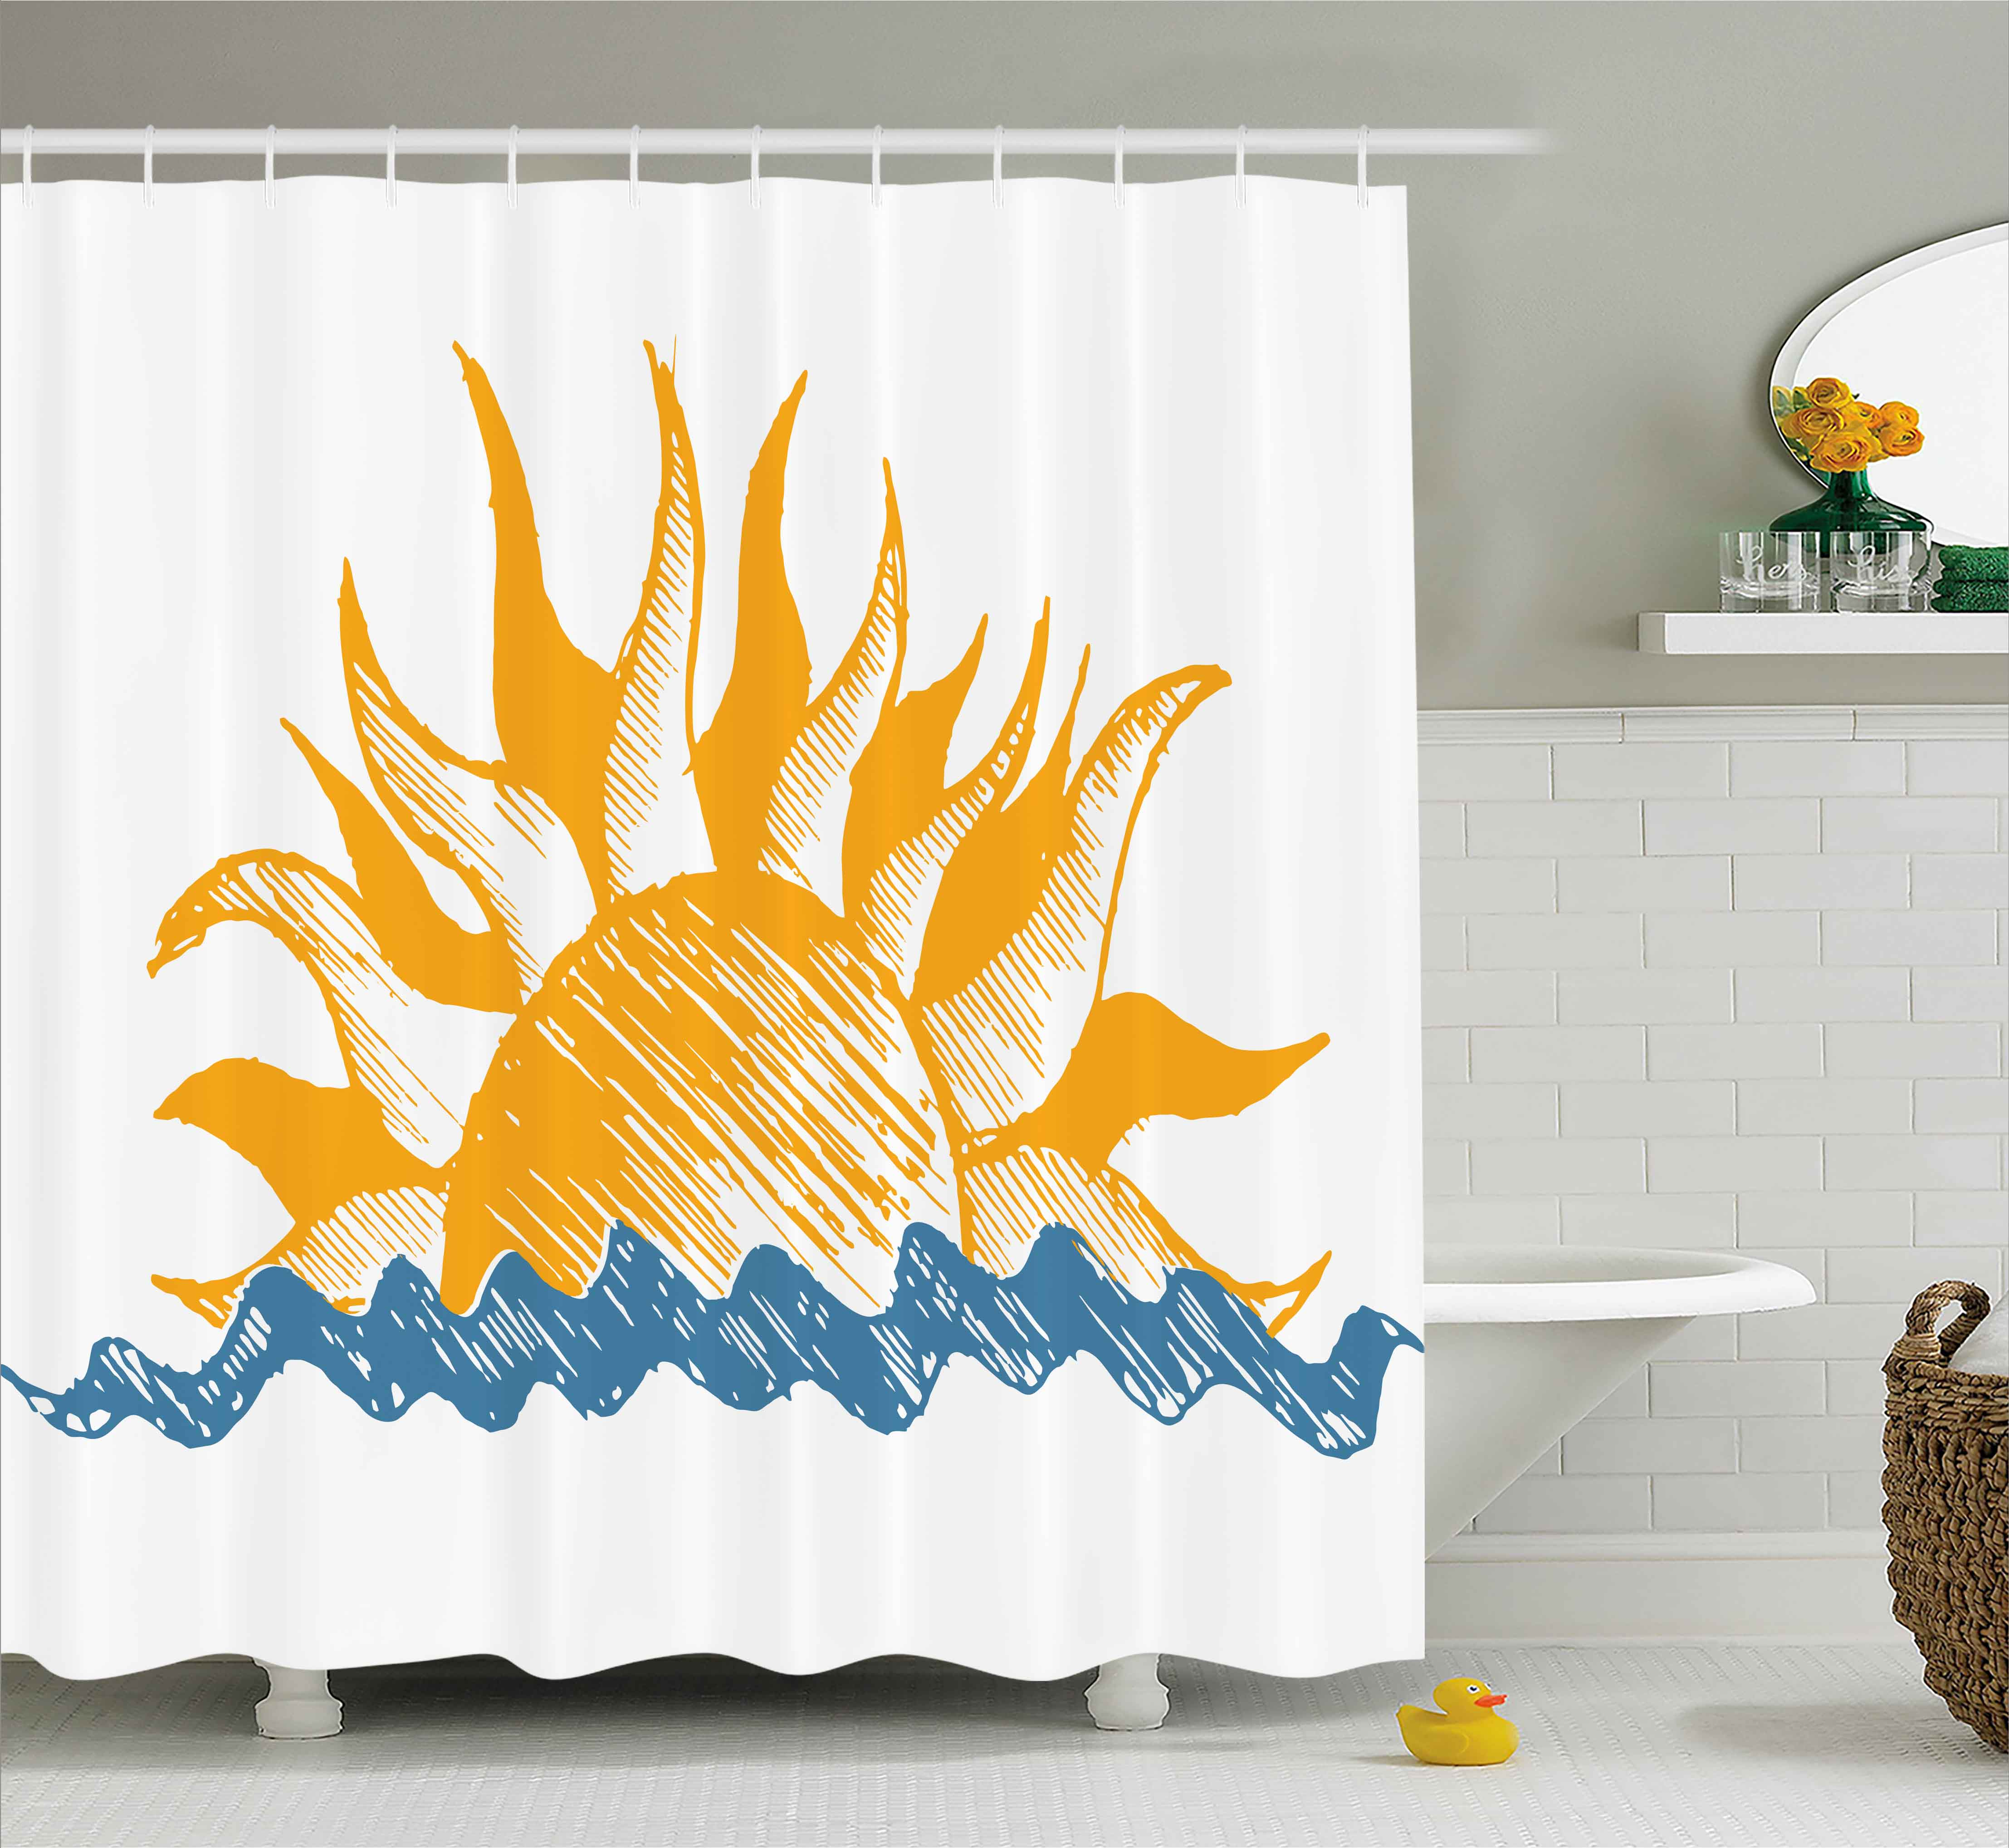 Modern Decor Shower Curtain, The Source of Life Sun with Fire like Beams and Wave like Clouds Image, Fabric Bathroom Set with Hooks, 69W X 70L Inches, Yellow and Blue, by Ambesonne